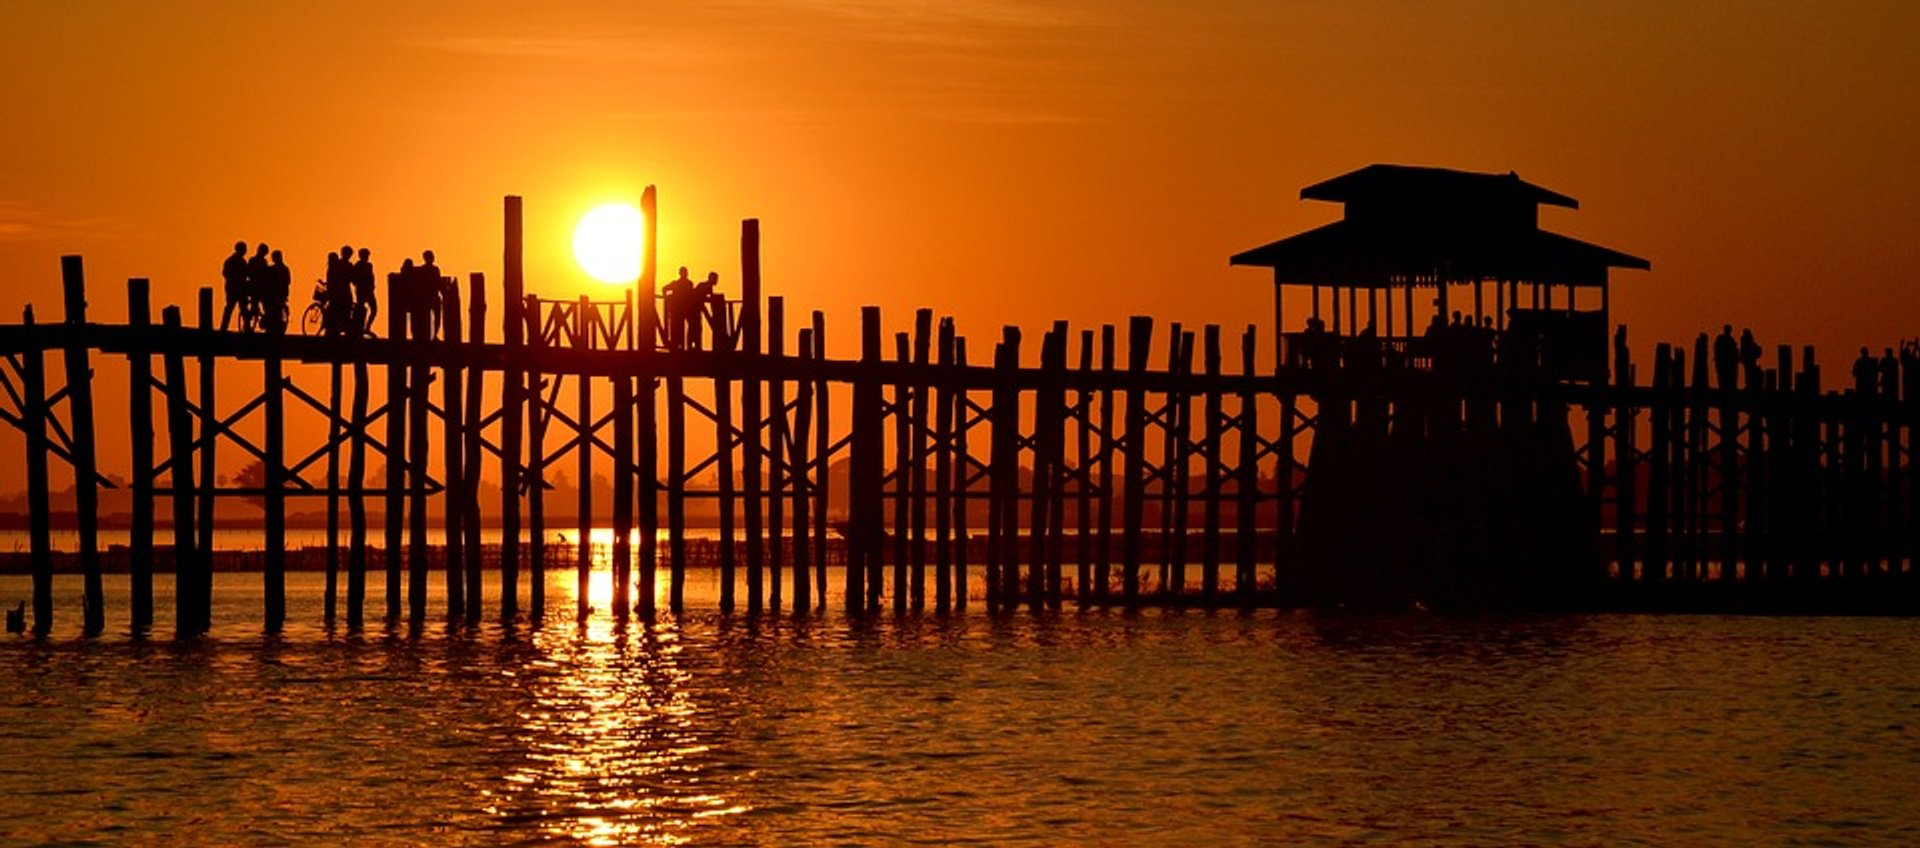 U Bein Bridge in Myanmar 2020 - Best Time